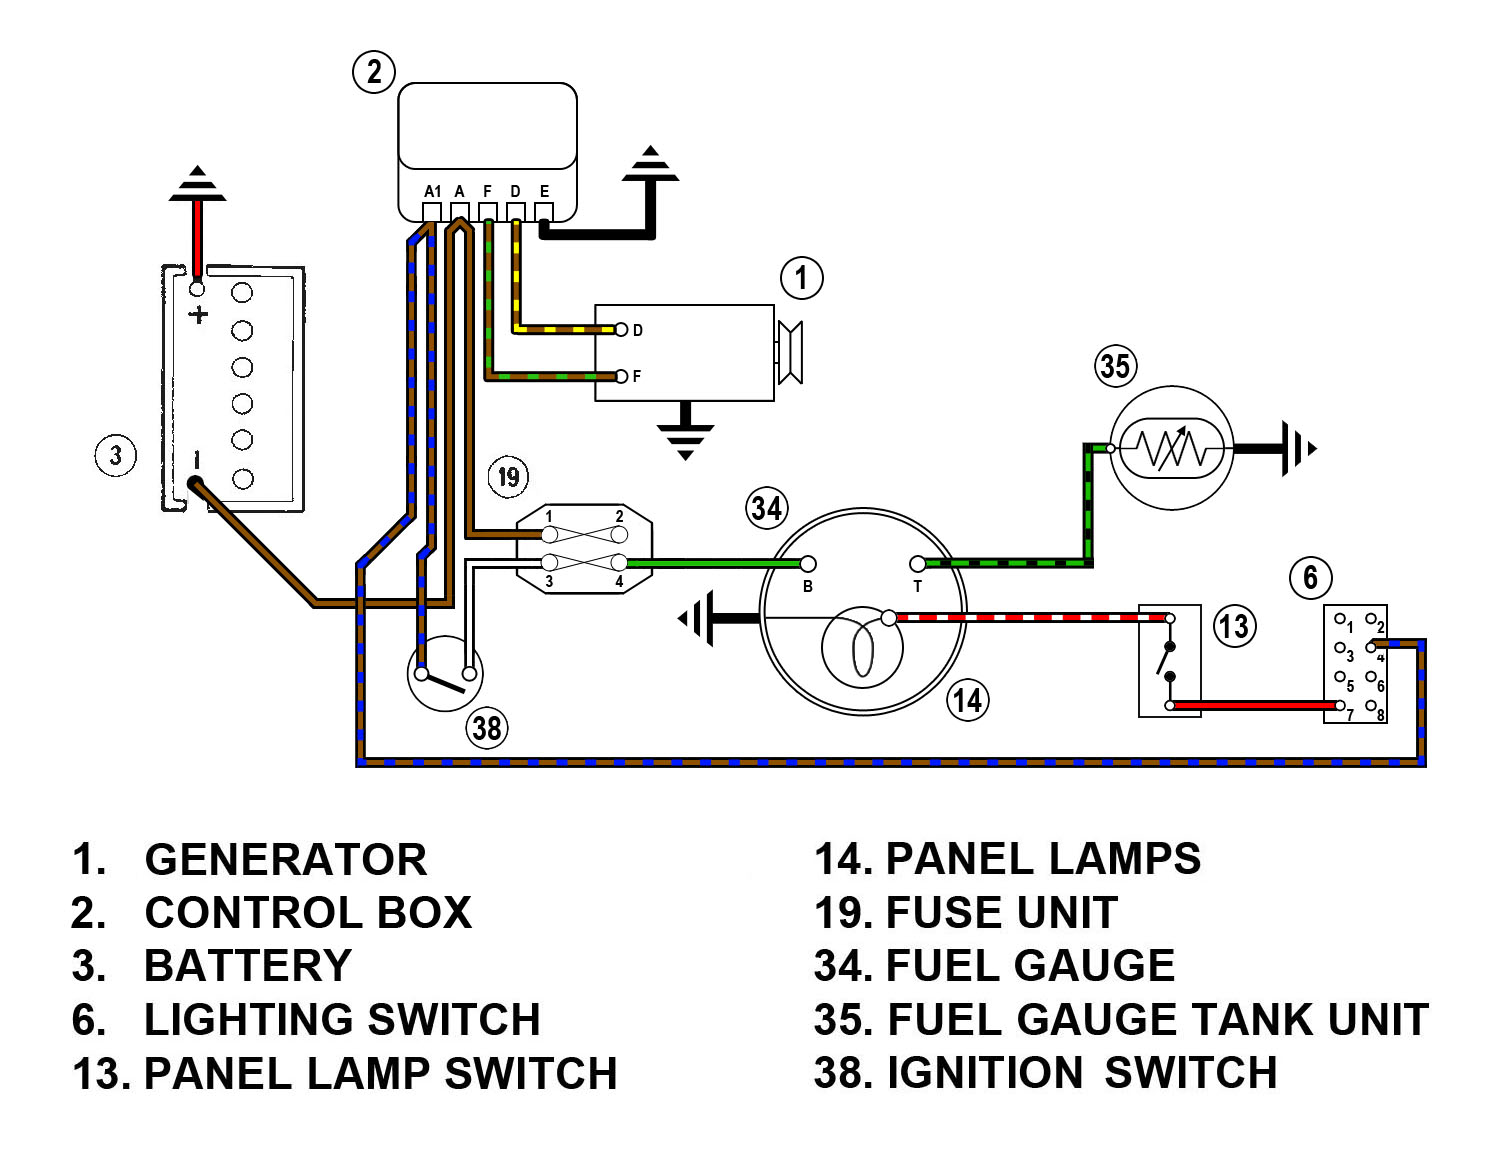 hight resolution of spridgetguru com tech index fuel gauge wiring diagramfuel gauge wiring diagram